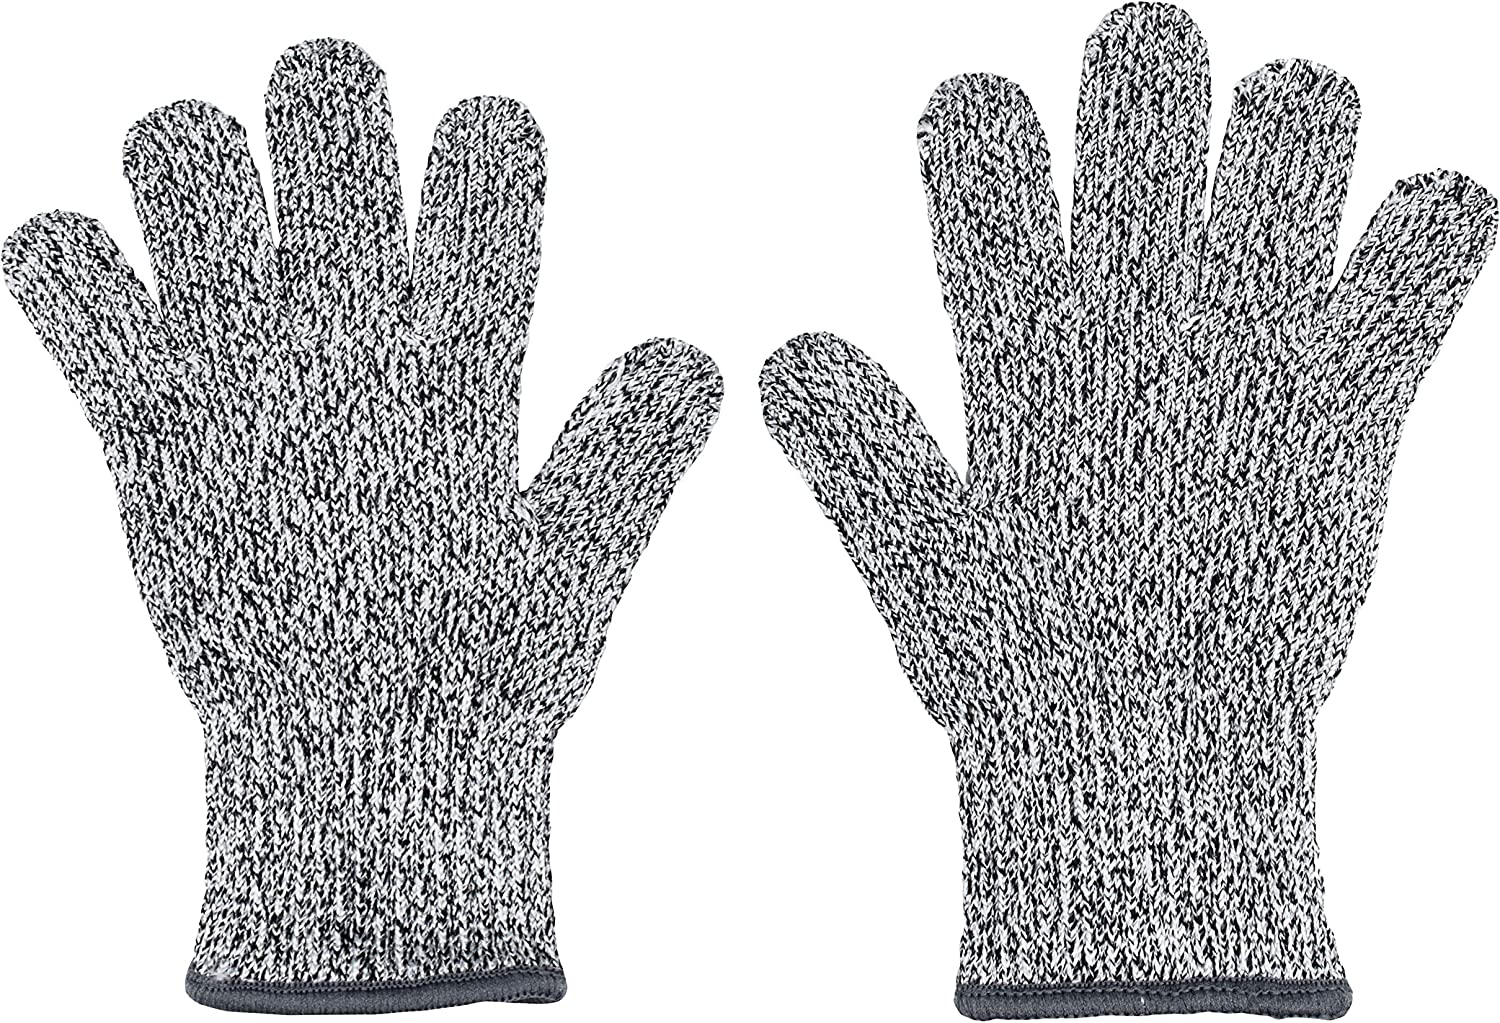 Cutlery-Pro Mesh Child-Size Cutting Knife Safety Gloves, Level-5 Protection, Fits Most Kids' Hands, 1-Pair